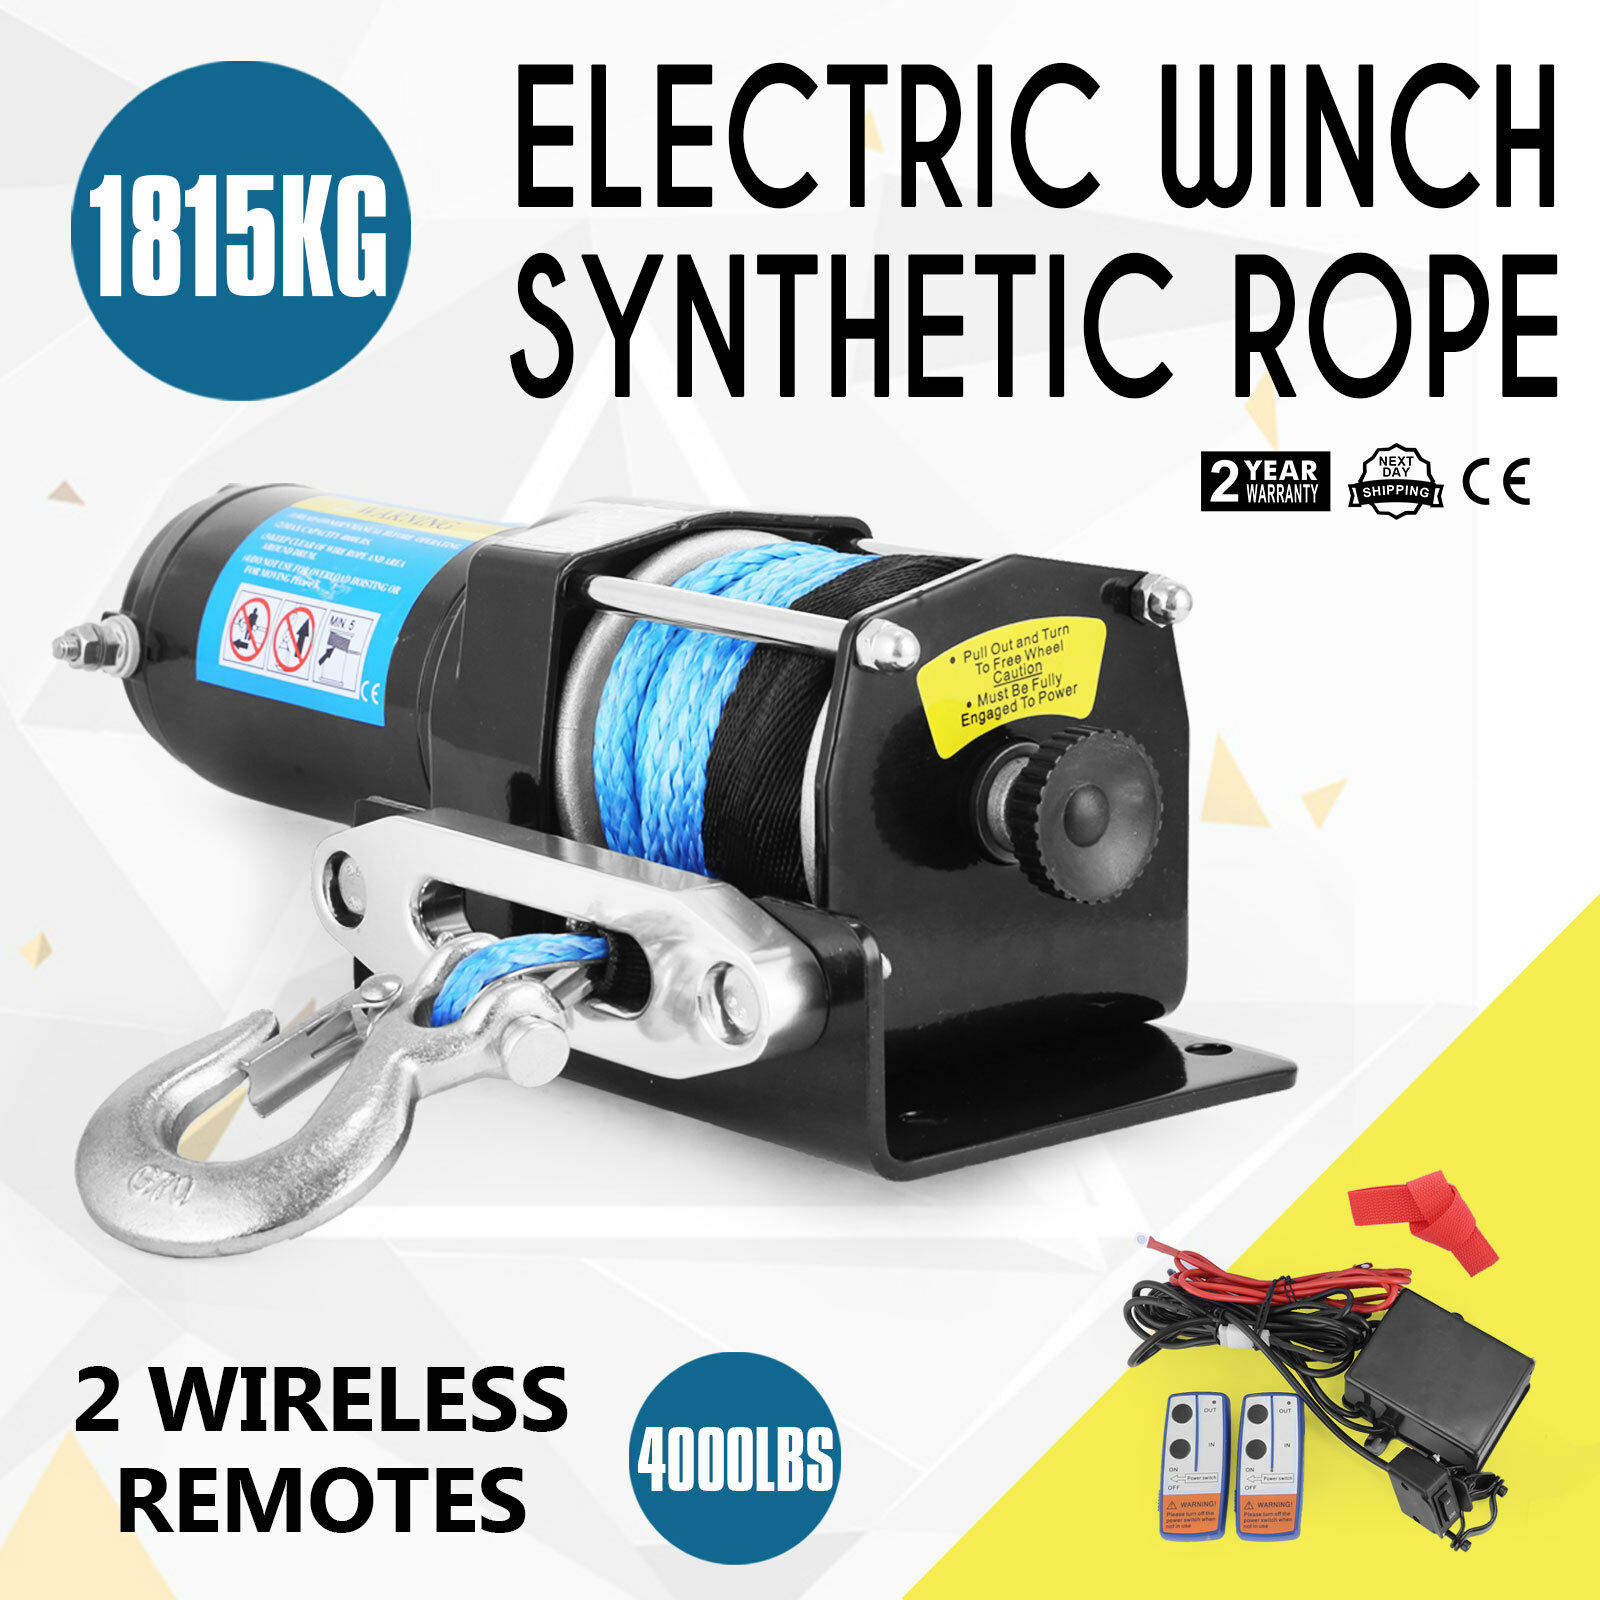 4000lbs/1815kg Electric Winch Synthetic Rope ATV 4WD Boat 12v Wirless Remotes